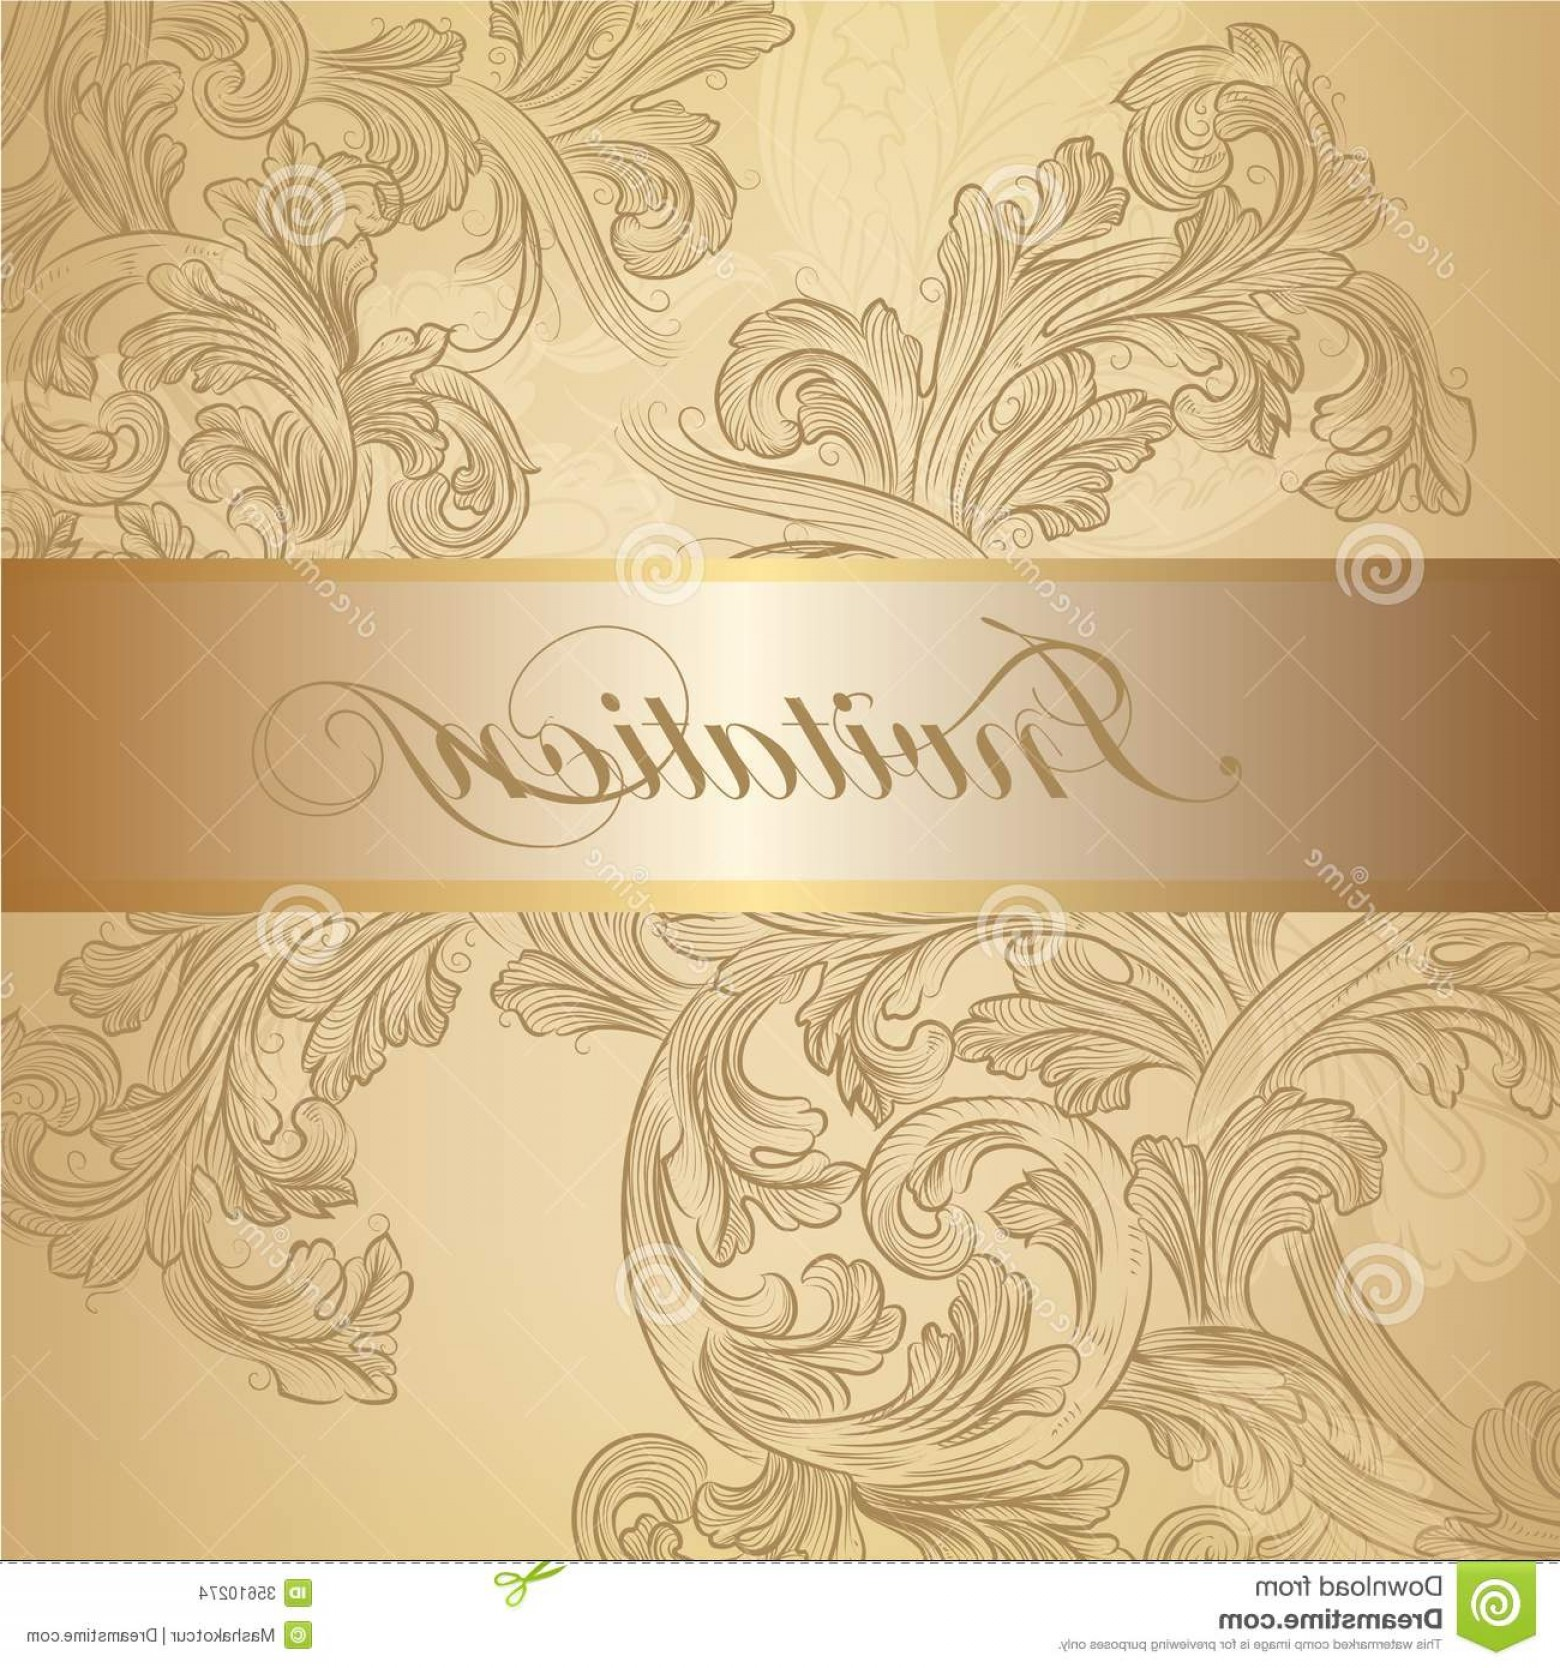 Gold Wedding Swirl Vector: Stock Images Vector Swirl Invitation Card Golden Color Elegant Classic Wedding Menu Retro Image